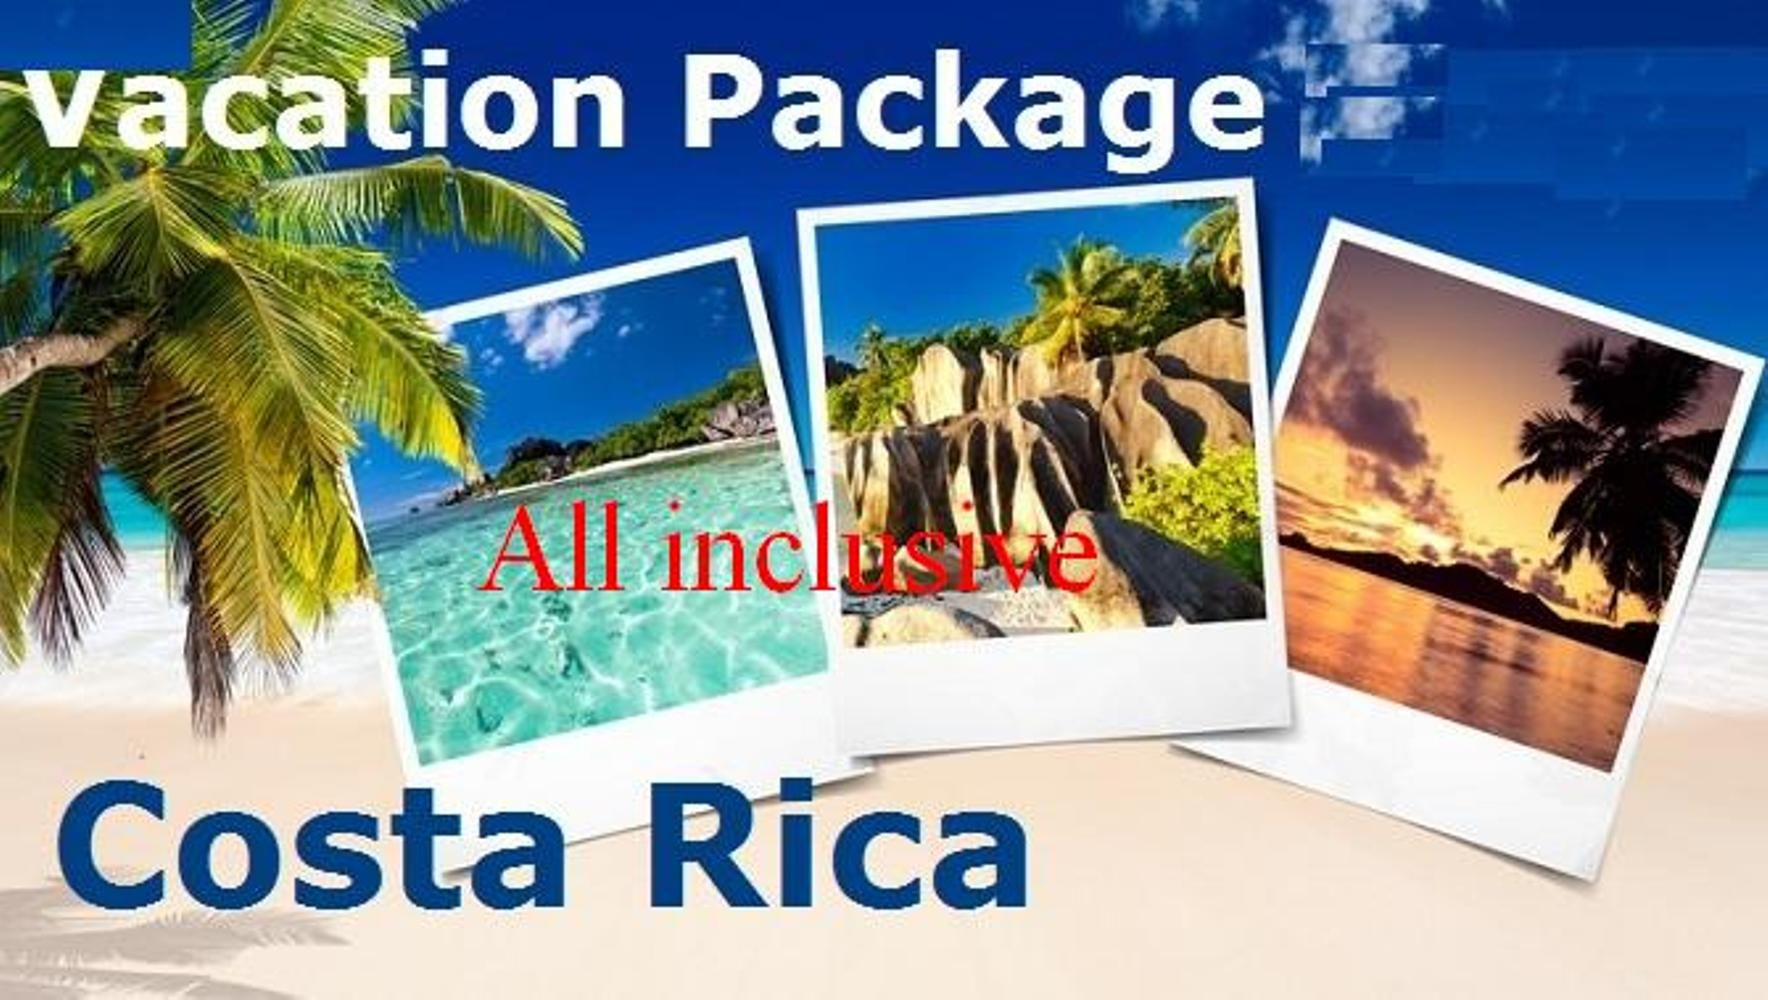 Search For Flights Hotels Best Travel Sites And Tips To Ensure - Costa rica vacation packages with airfare